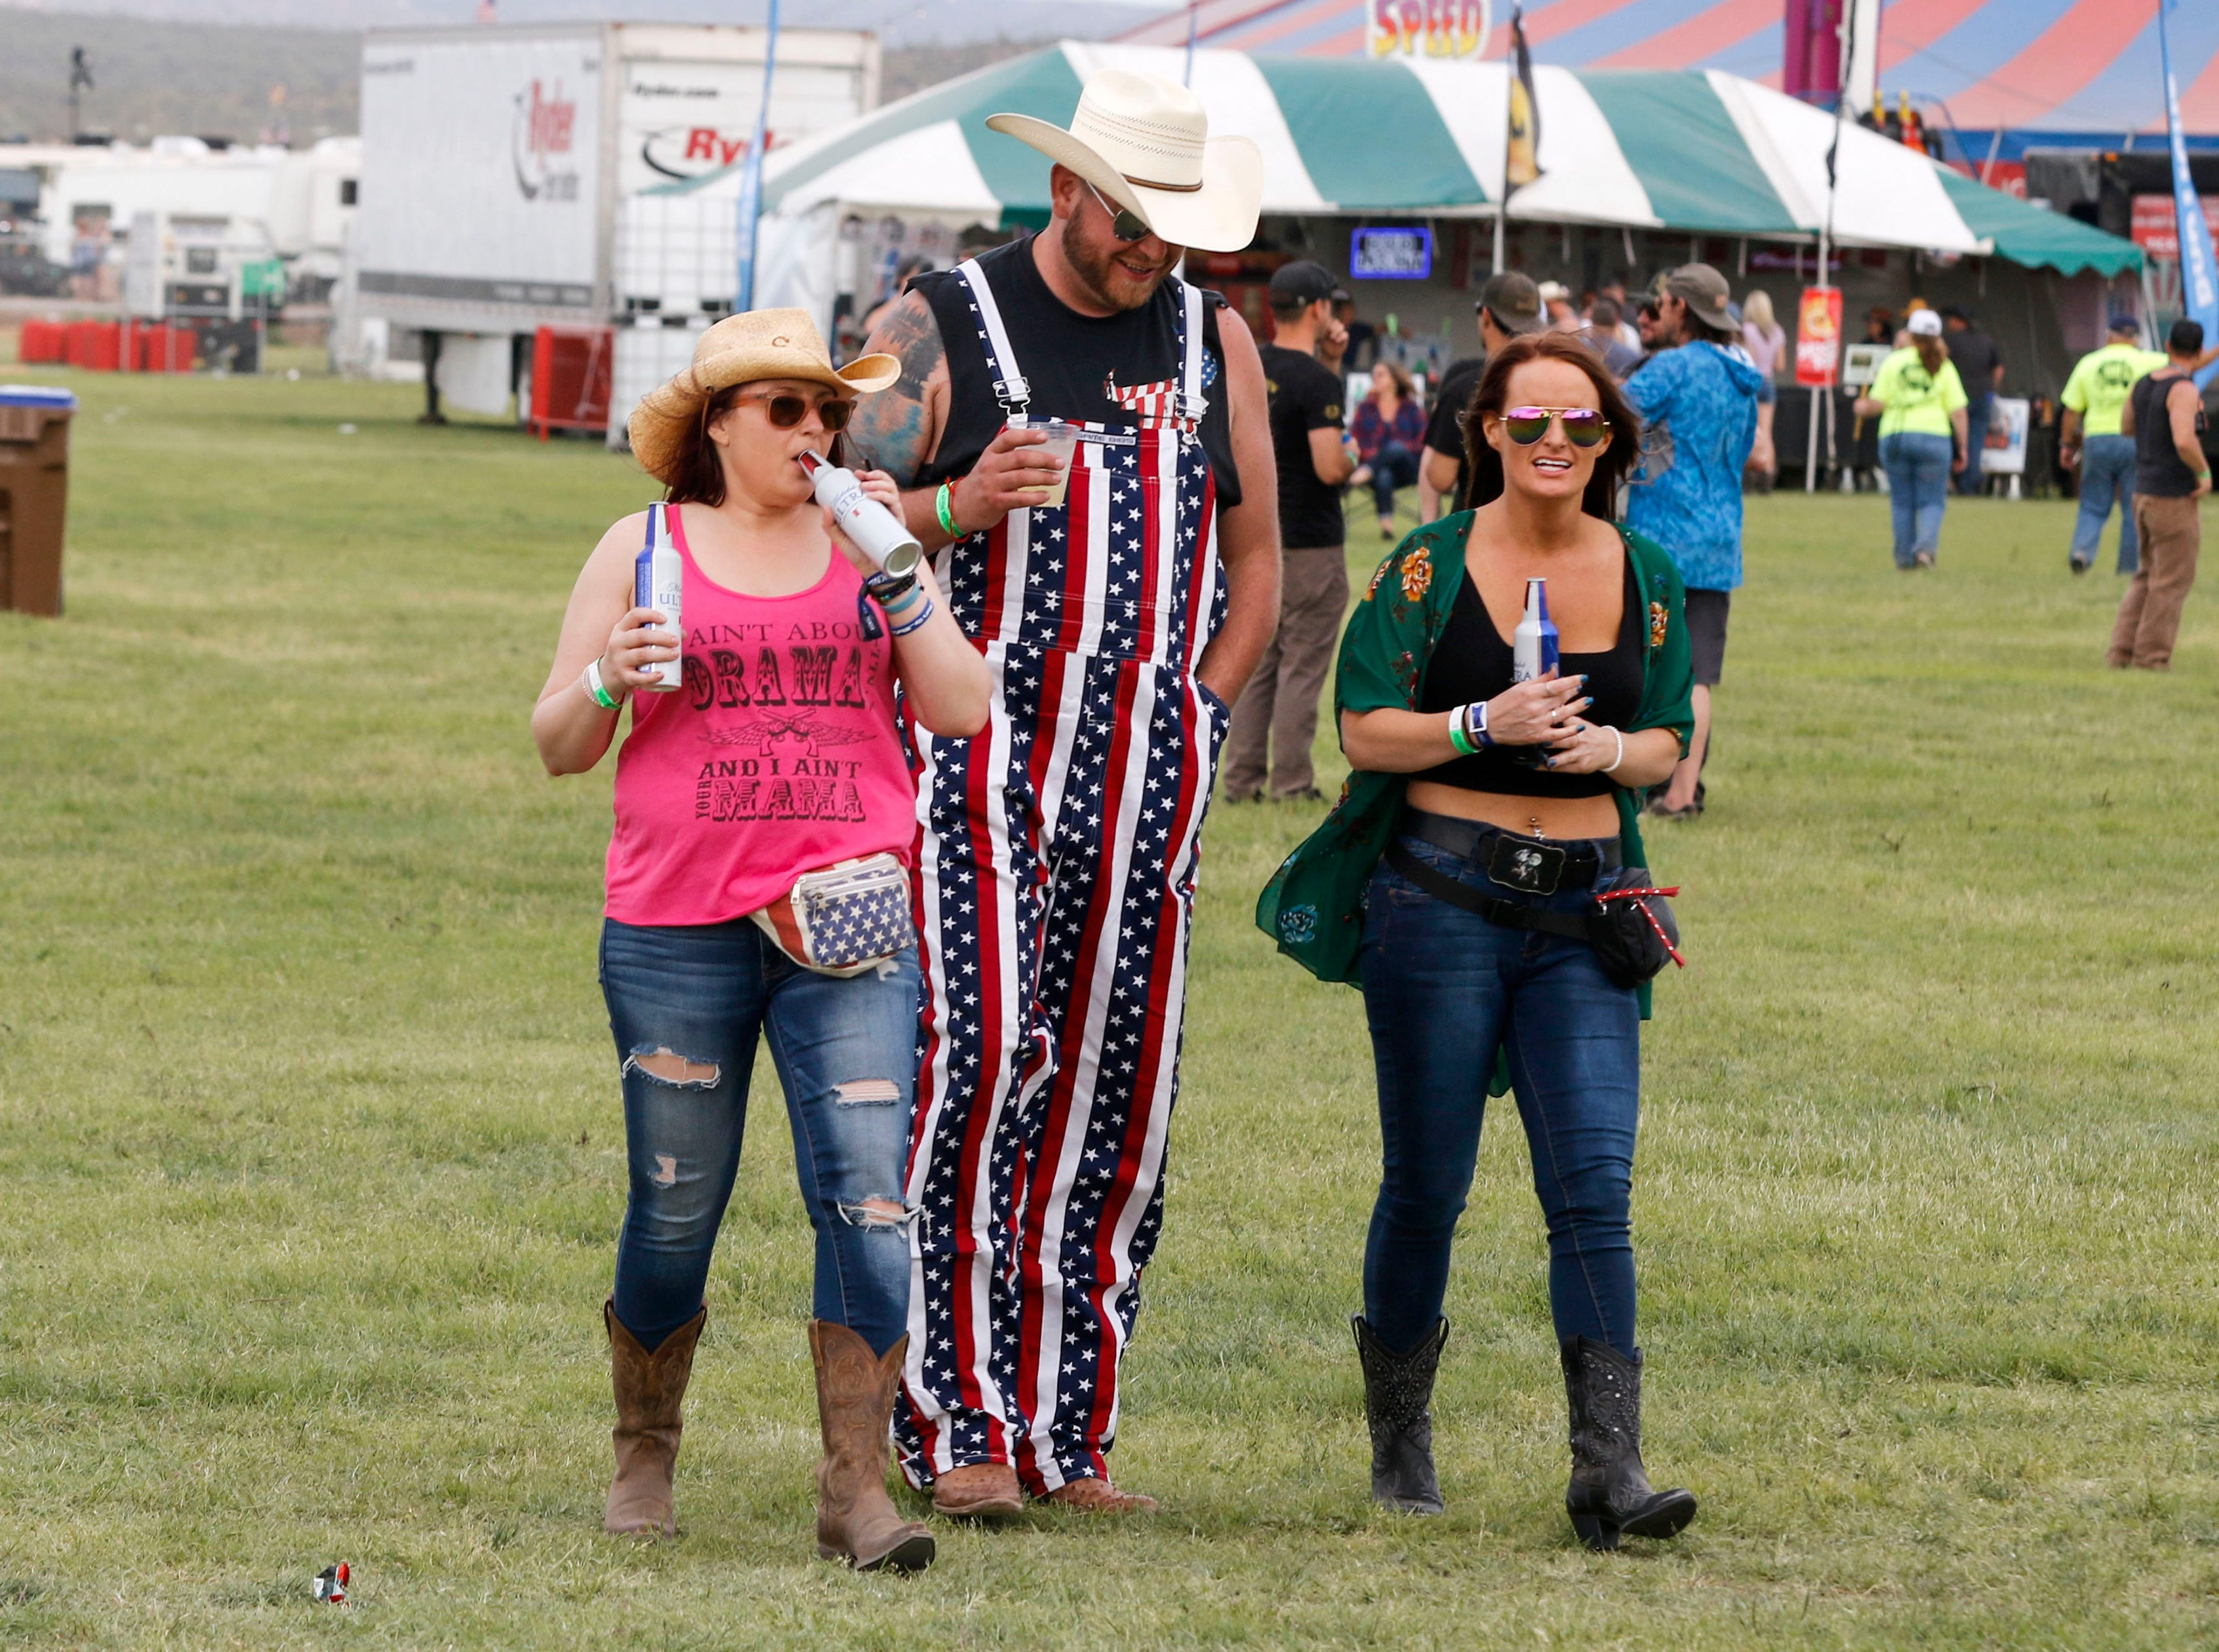 Music lovers make their way across the band area during Country Thunder Arizona on April 11, 2019, in Florence, Arizona.